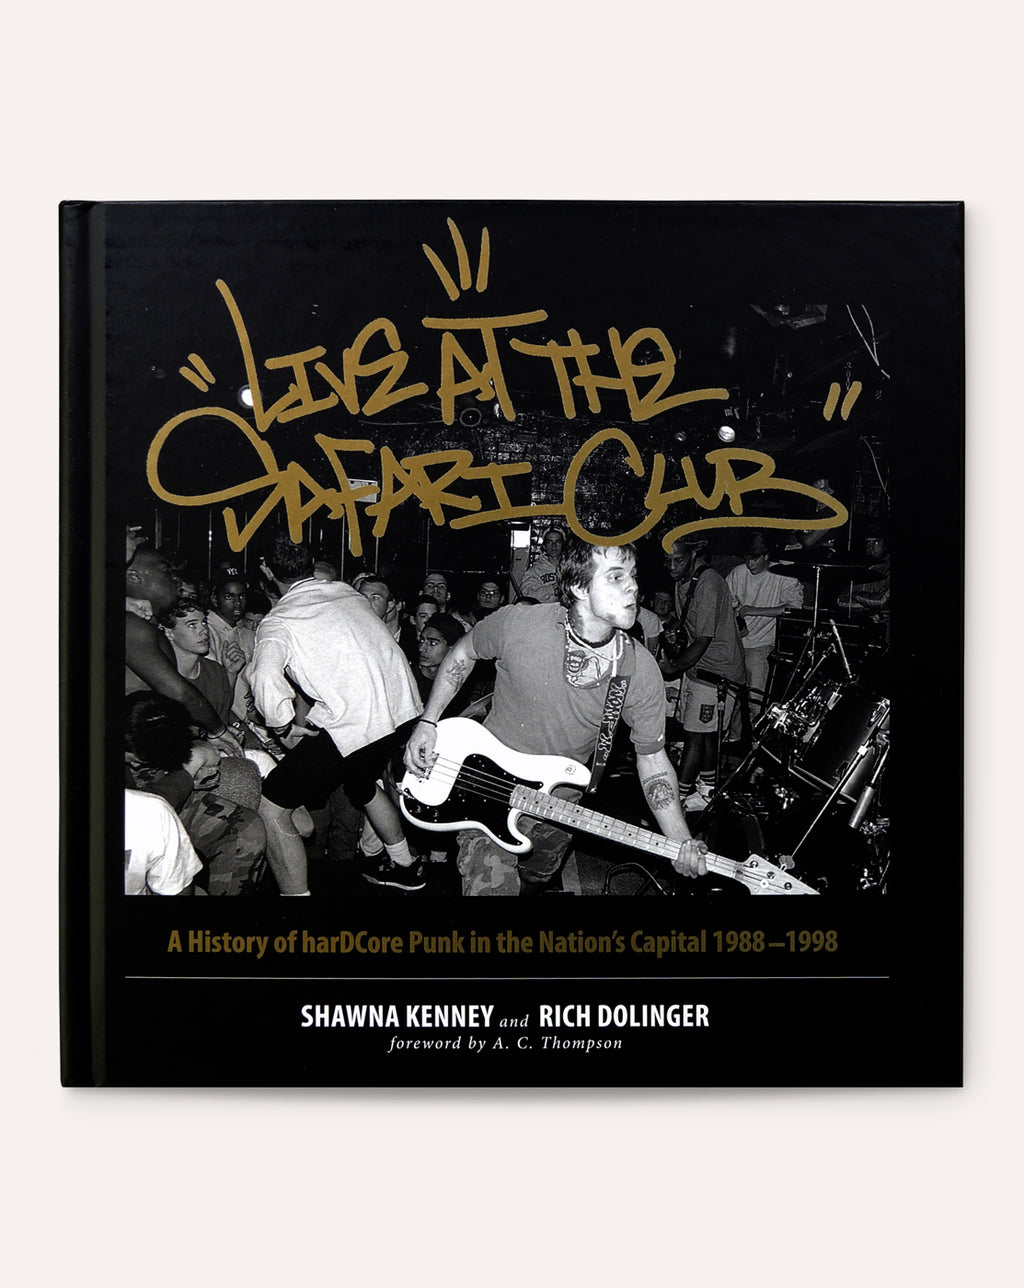 Live at the Safari Club: A History of harDCcore Punk in the Nation's Capital, 1988-1998